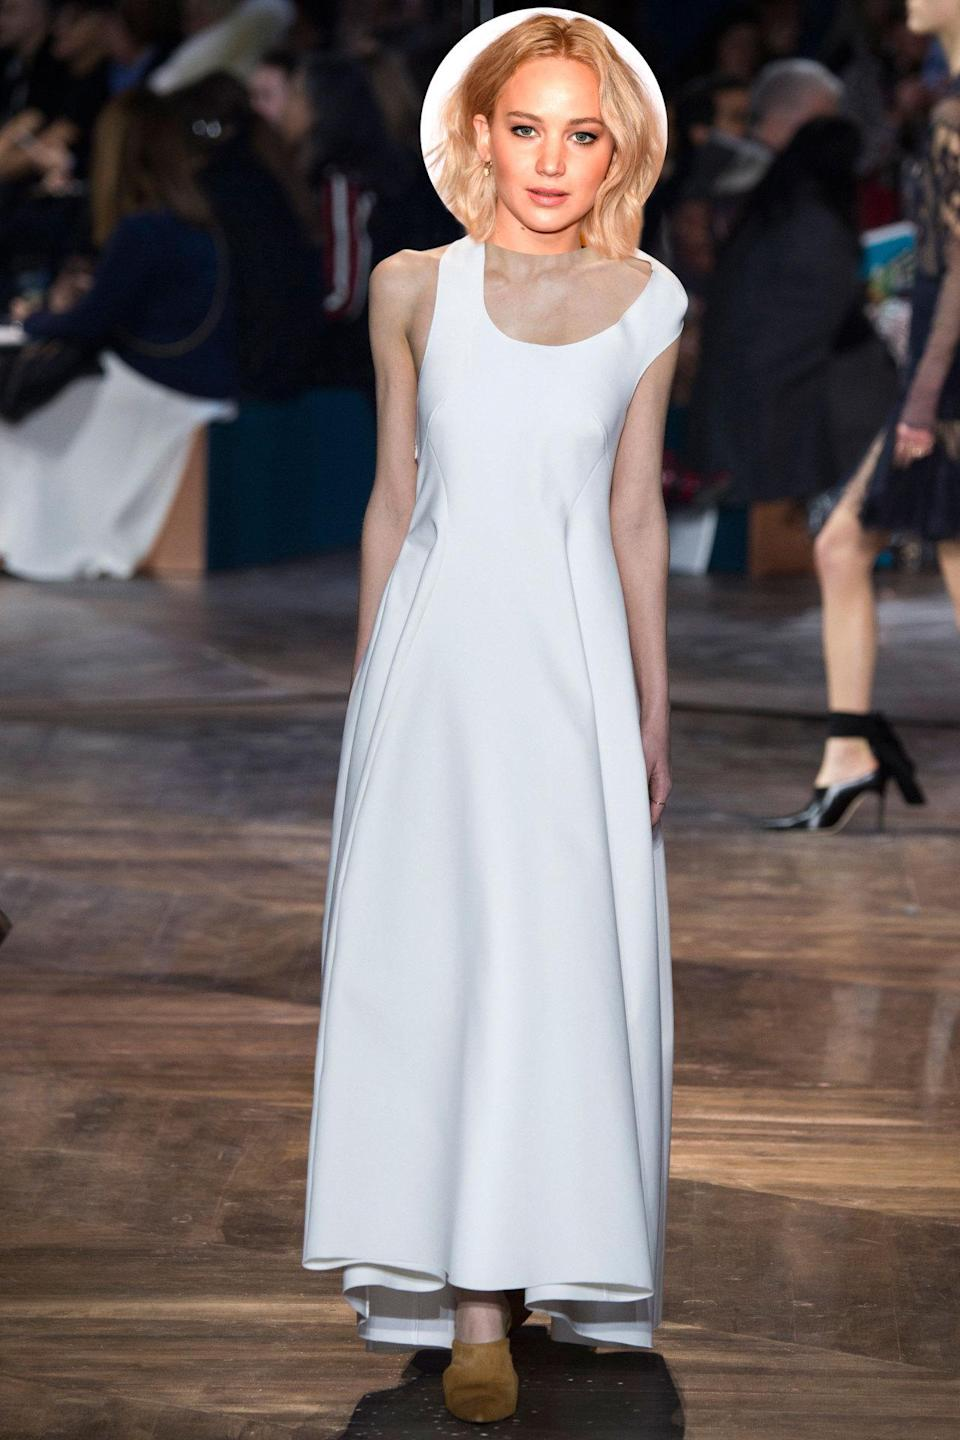 <p>Since we all know J.Law will be wearing Dior, the question comes down to which look she'll choose. We think she'd be a vision in white in this simple yet sleek couture dress. </p>